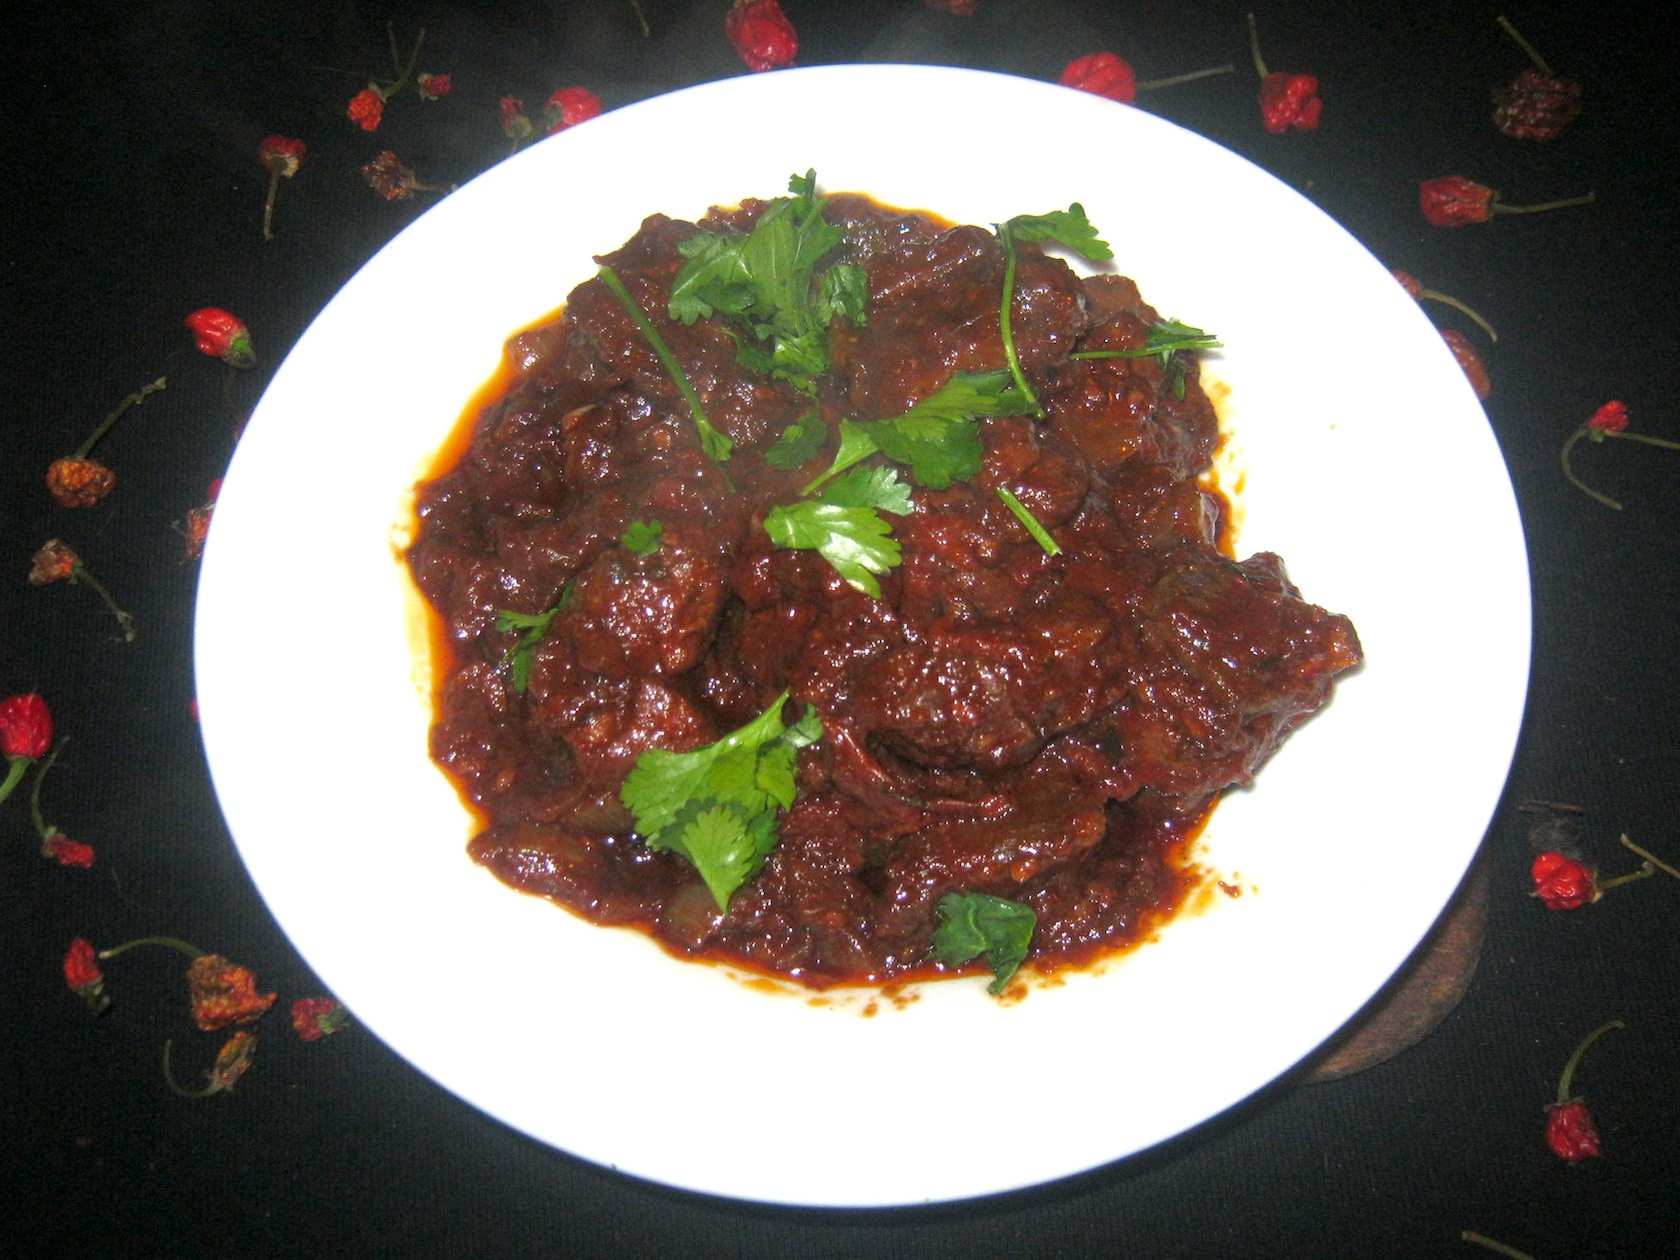 Carolina Reaper Venison Curry with Okra and fresh Coriander Leaves